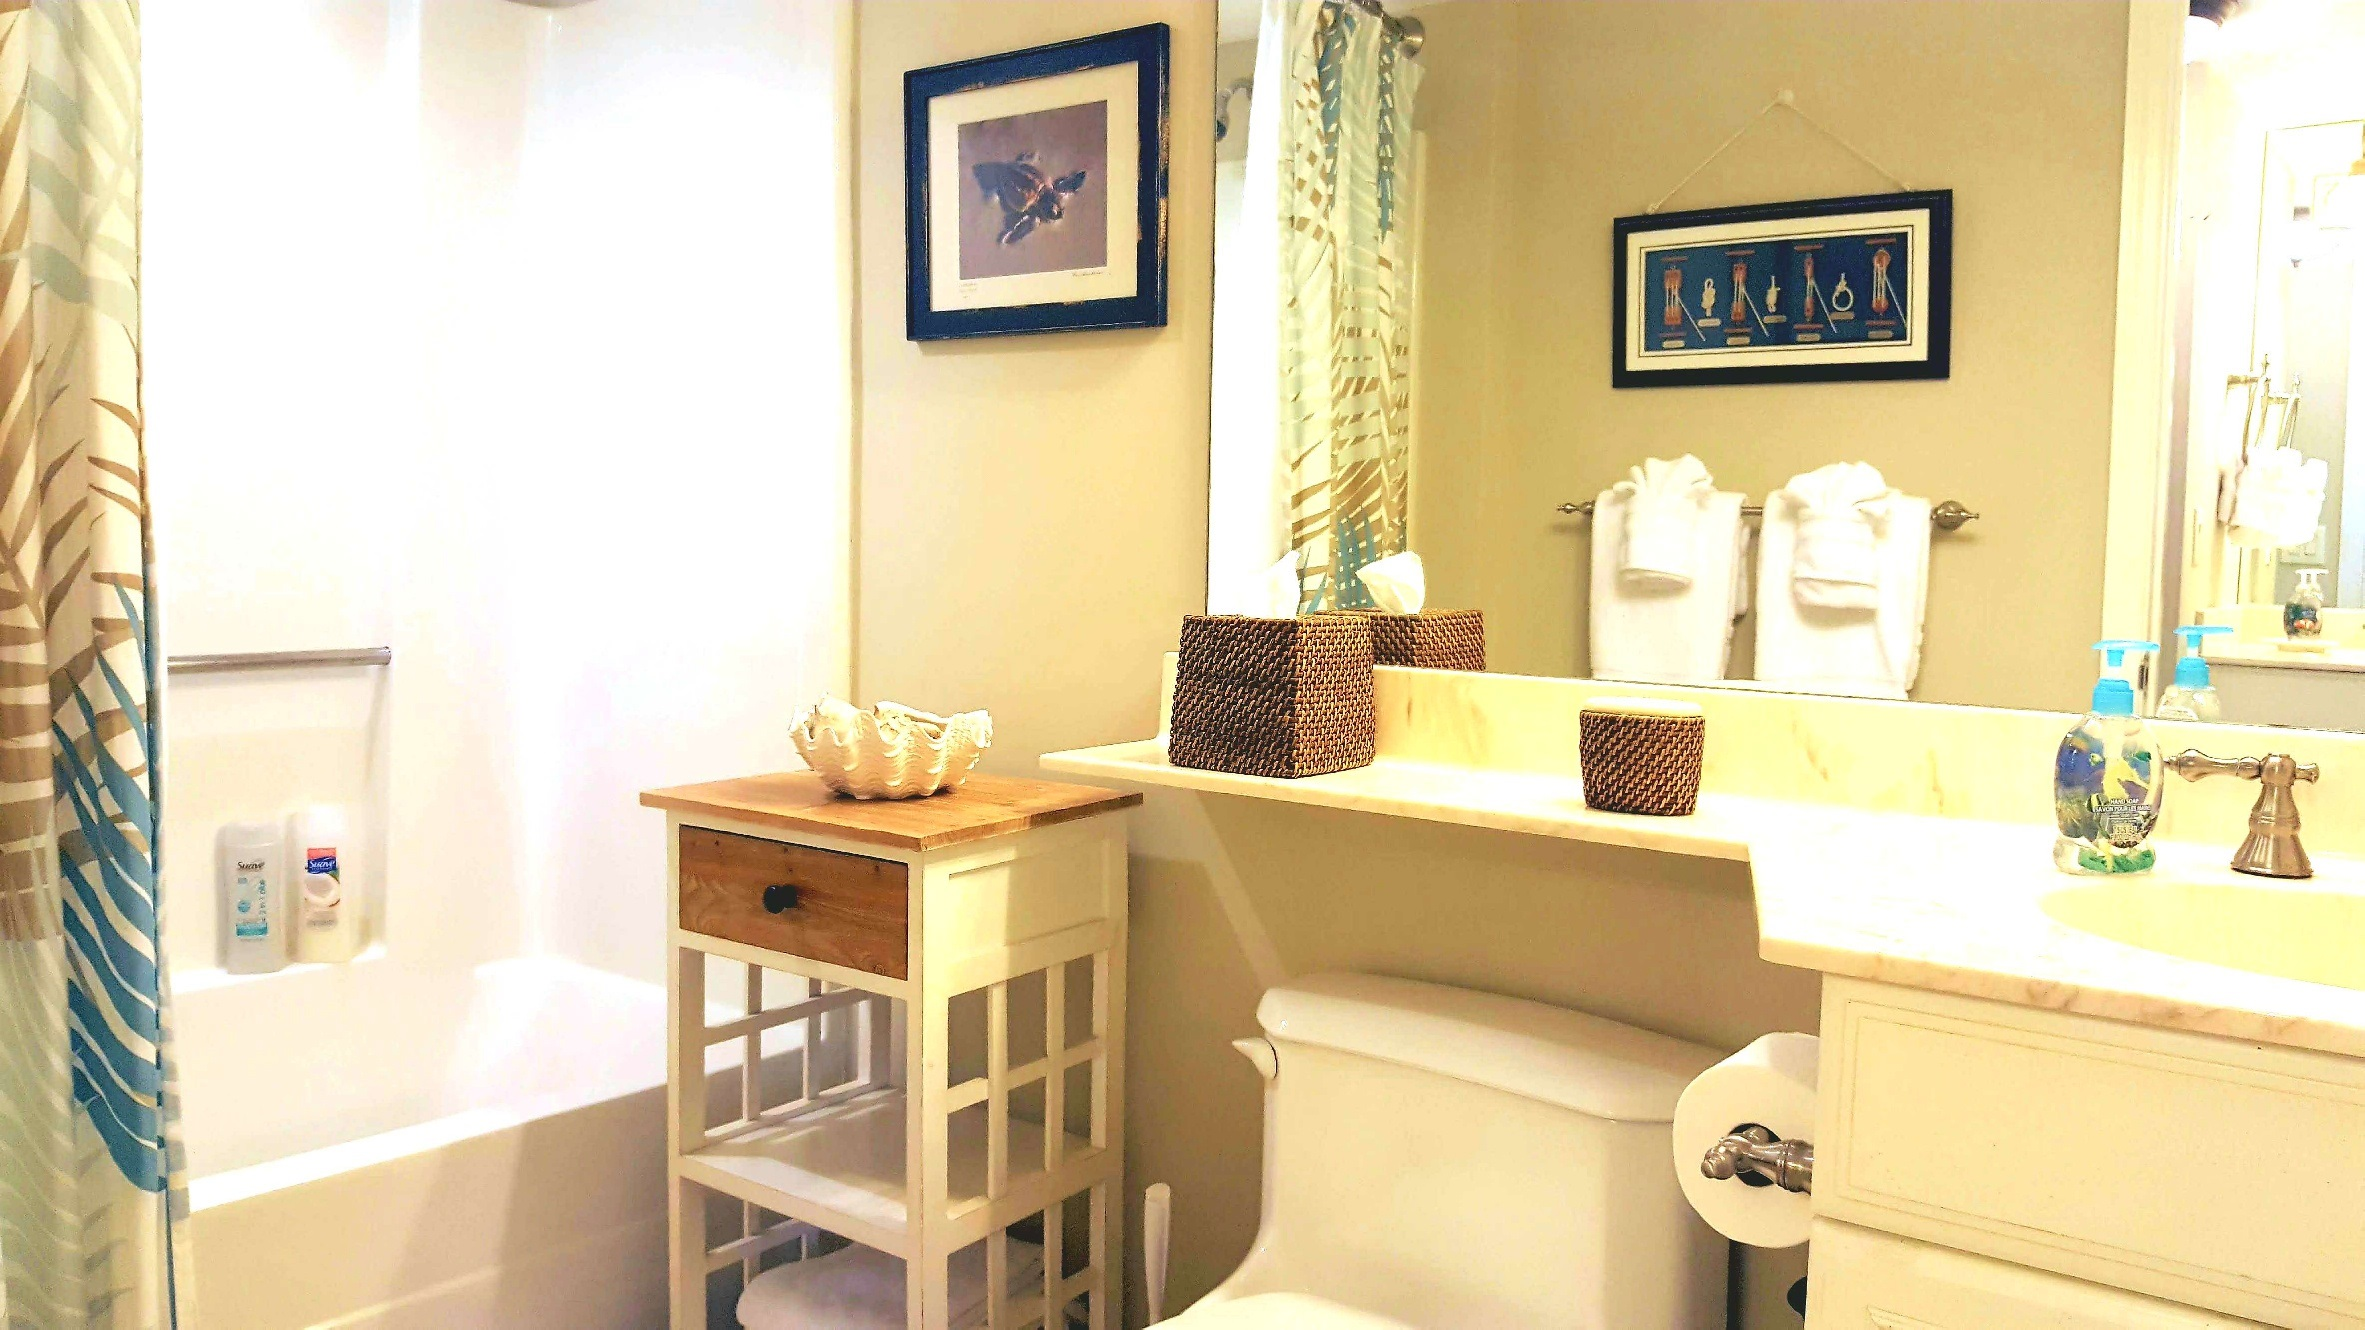 Second bathroom with tub-shower and single sink vanity.